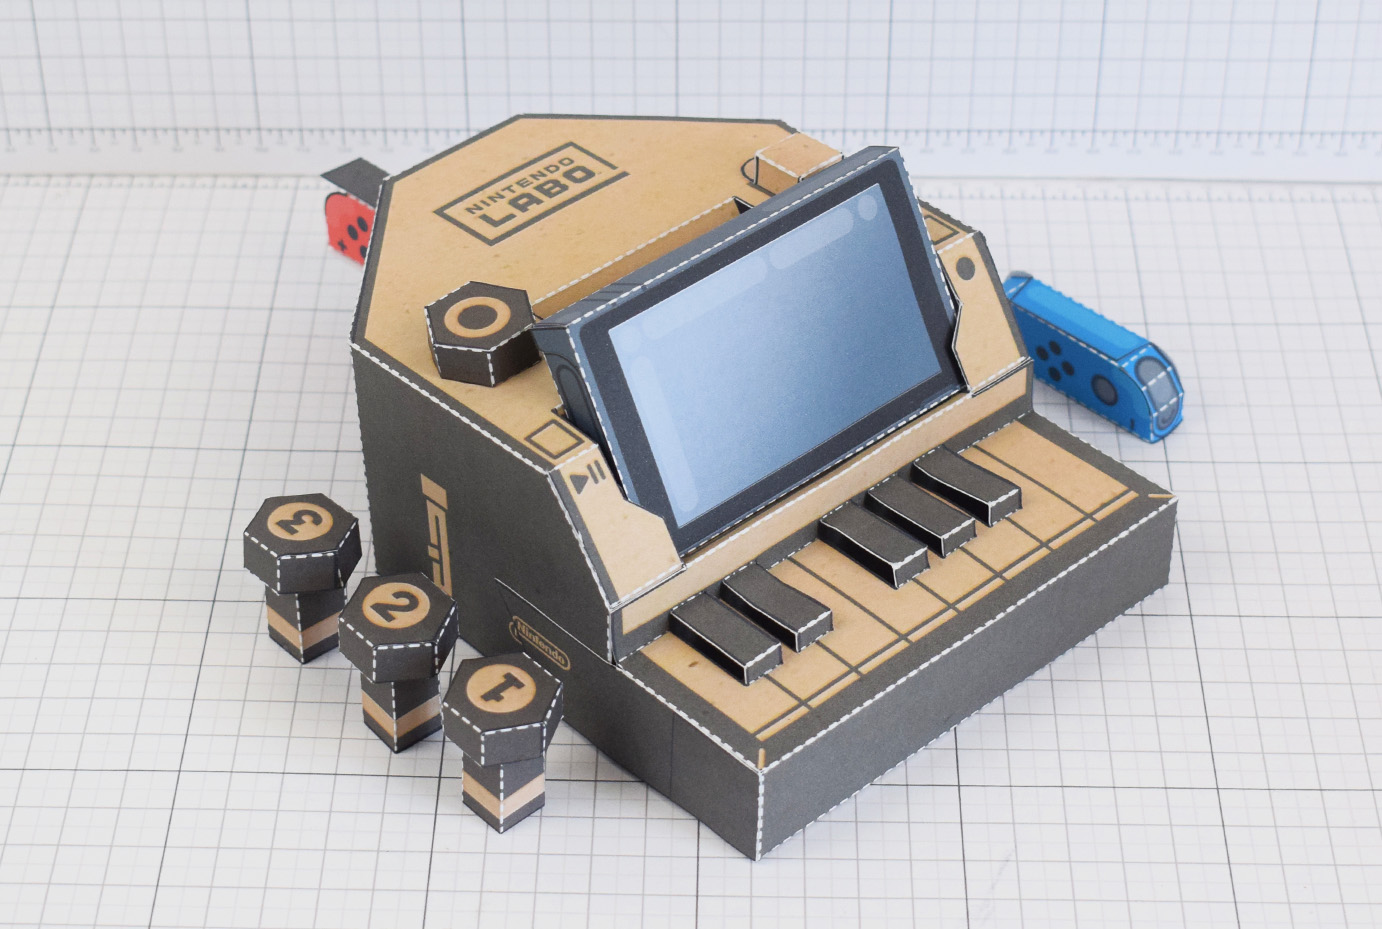 Nintendo switch labo fan art concept printable download paper toy model craft miniture graphic design illustration by Alex Gwynne for hire